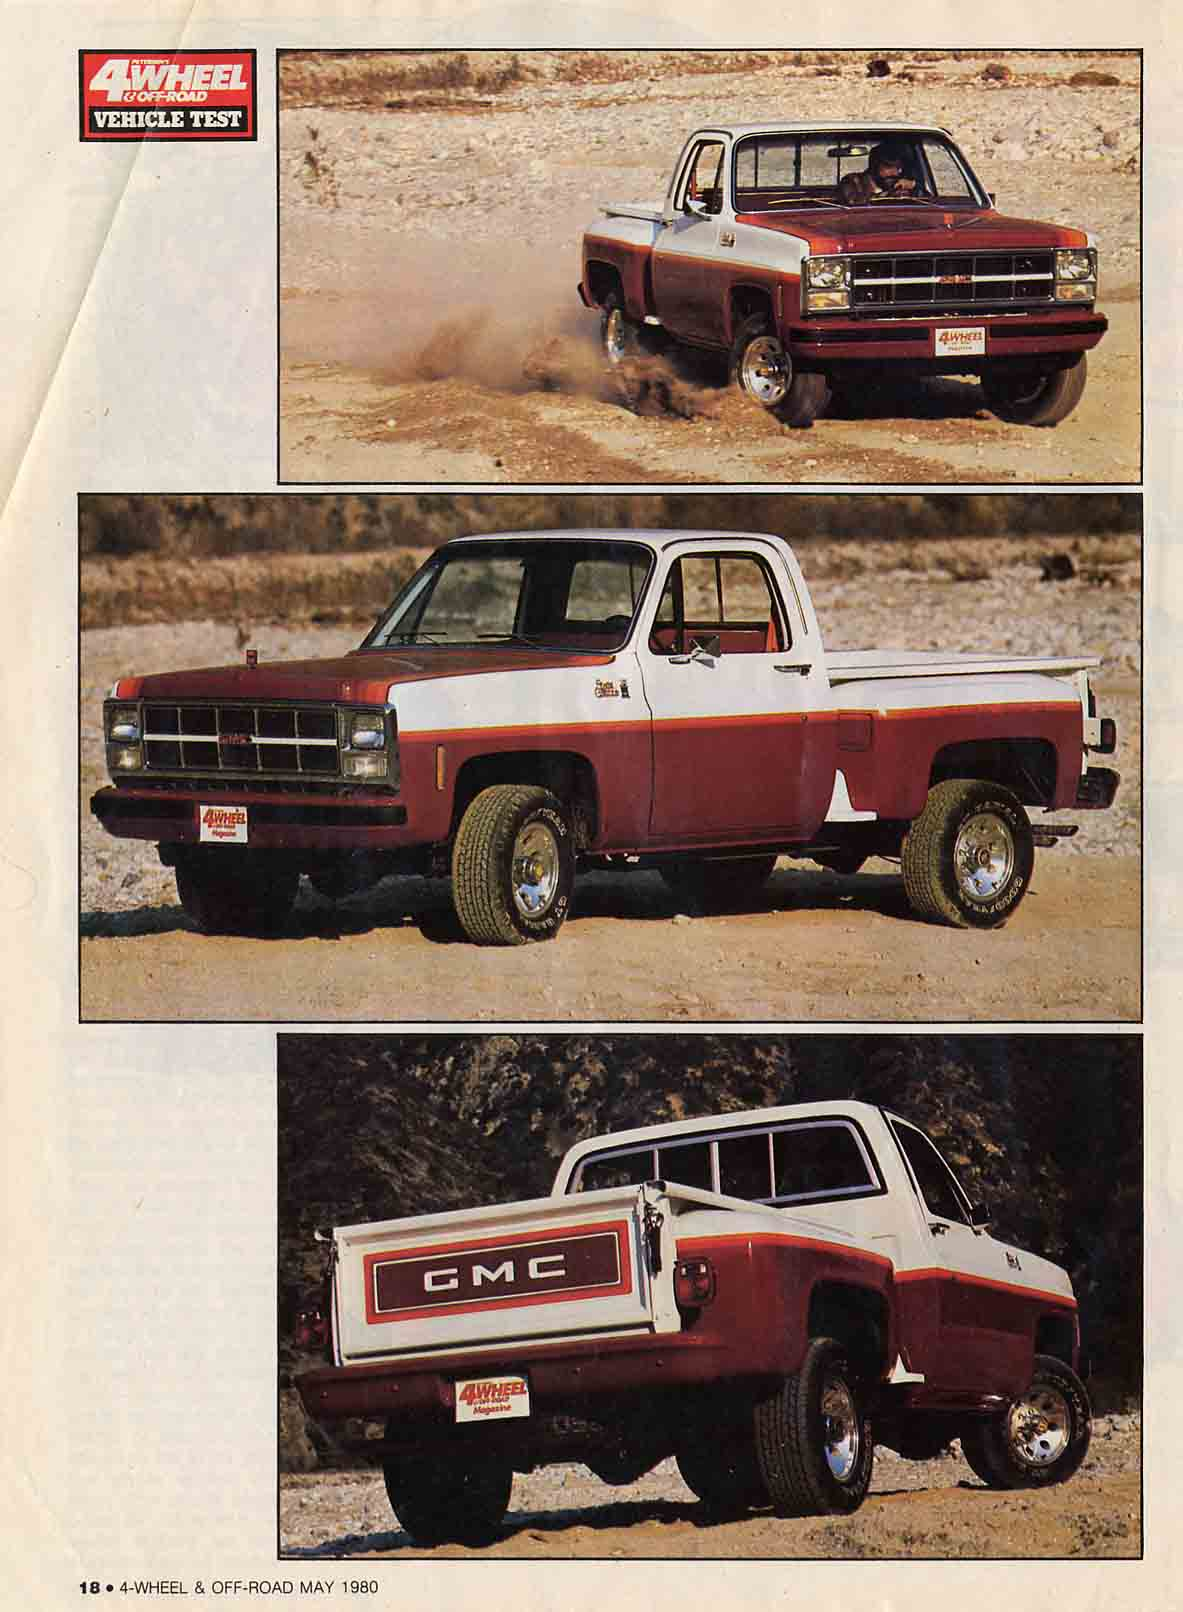 1000 images about gmc street coupes on pinterest coupe chevy trucks and bench seat covers. Black Bedroom Furniture Sets. Home Design Ideas